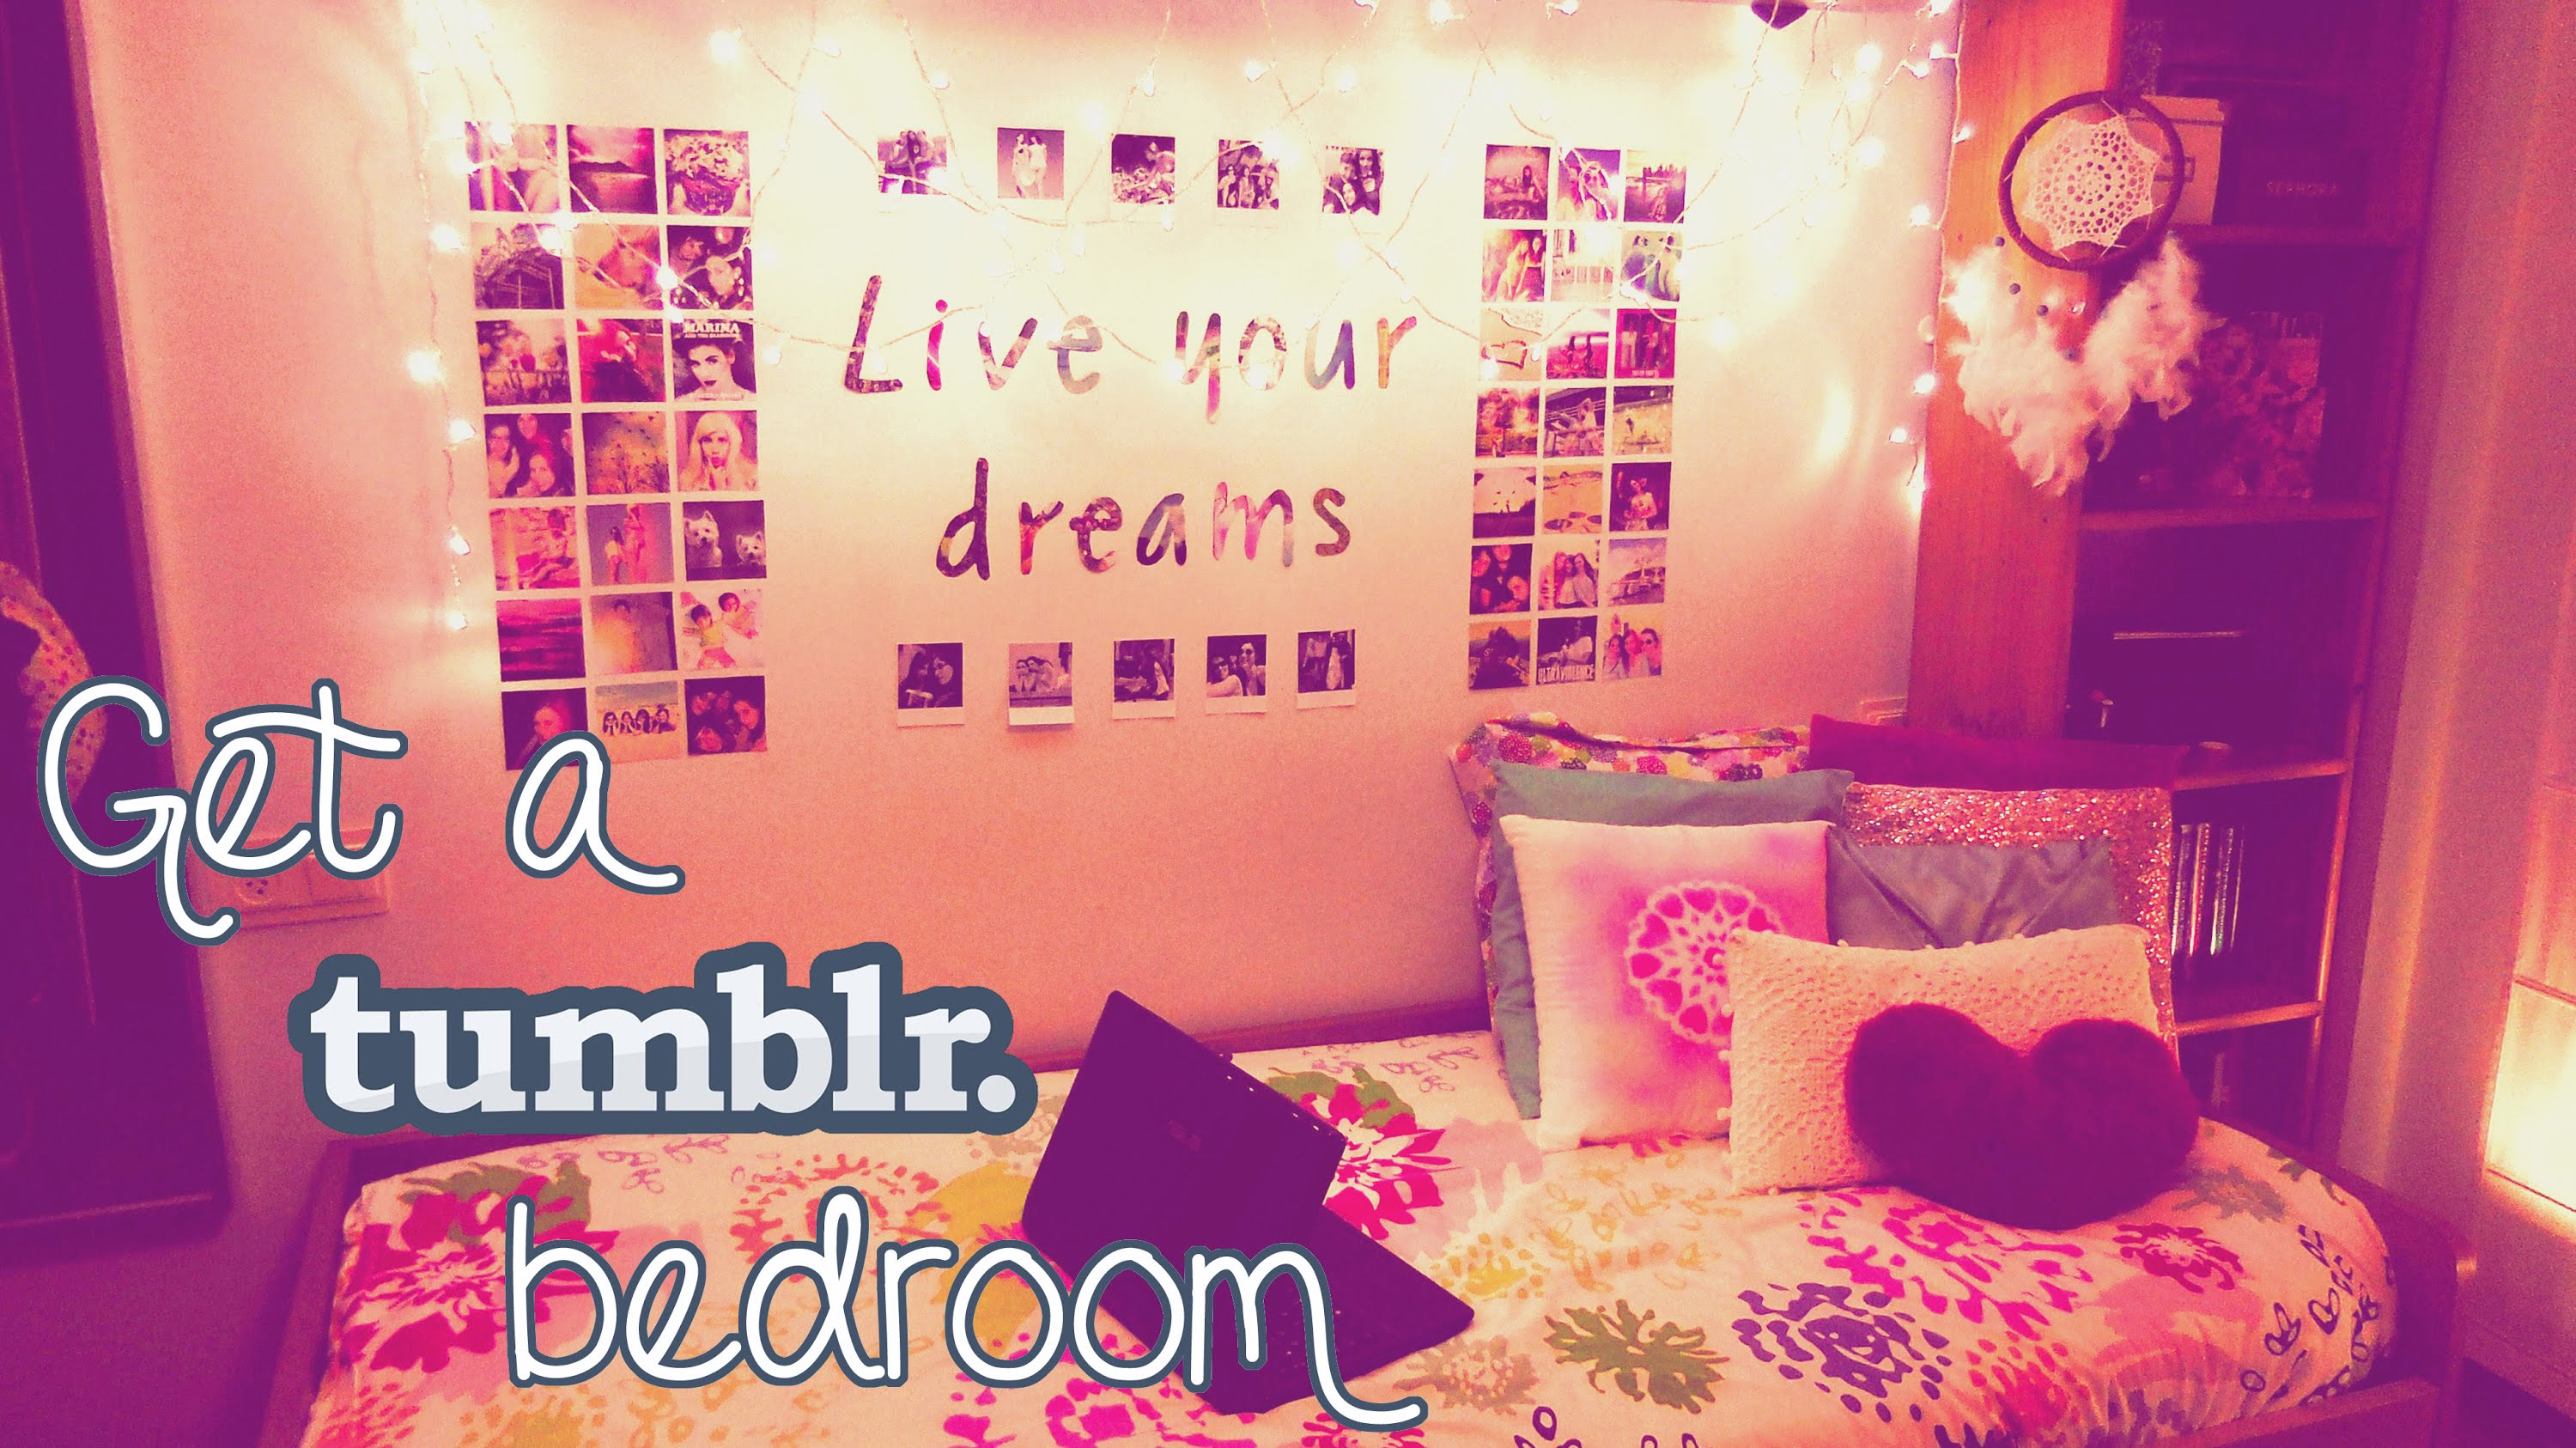 Do it yourself Tumblr encouraged home decor strategies! Low cost & quick initiatives